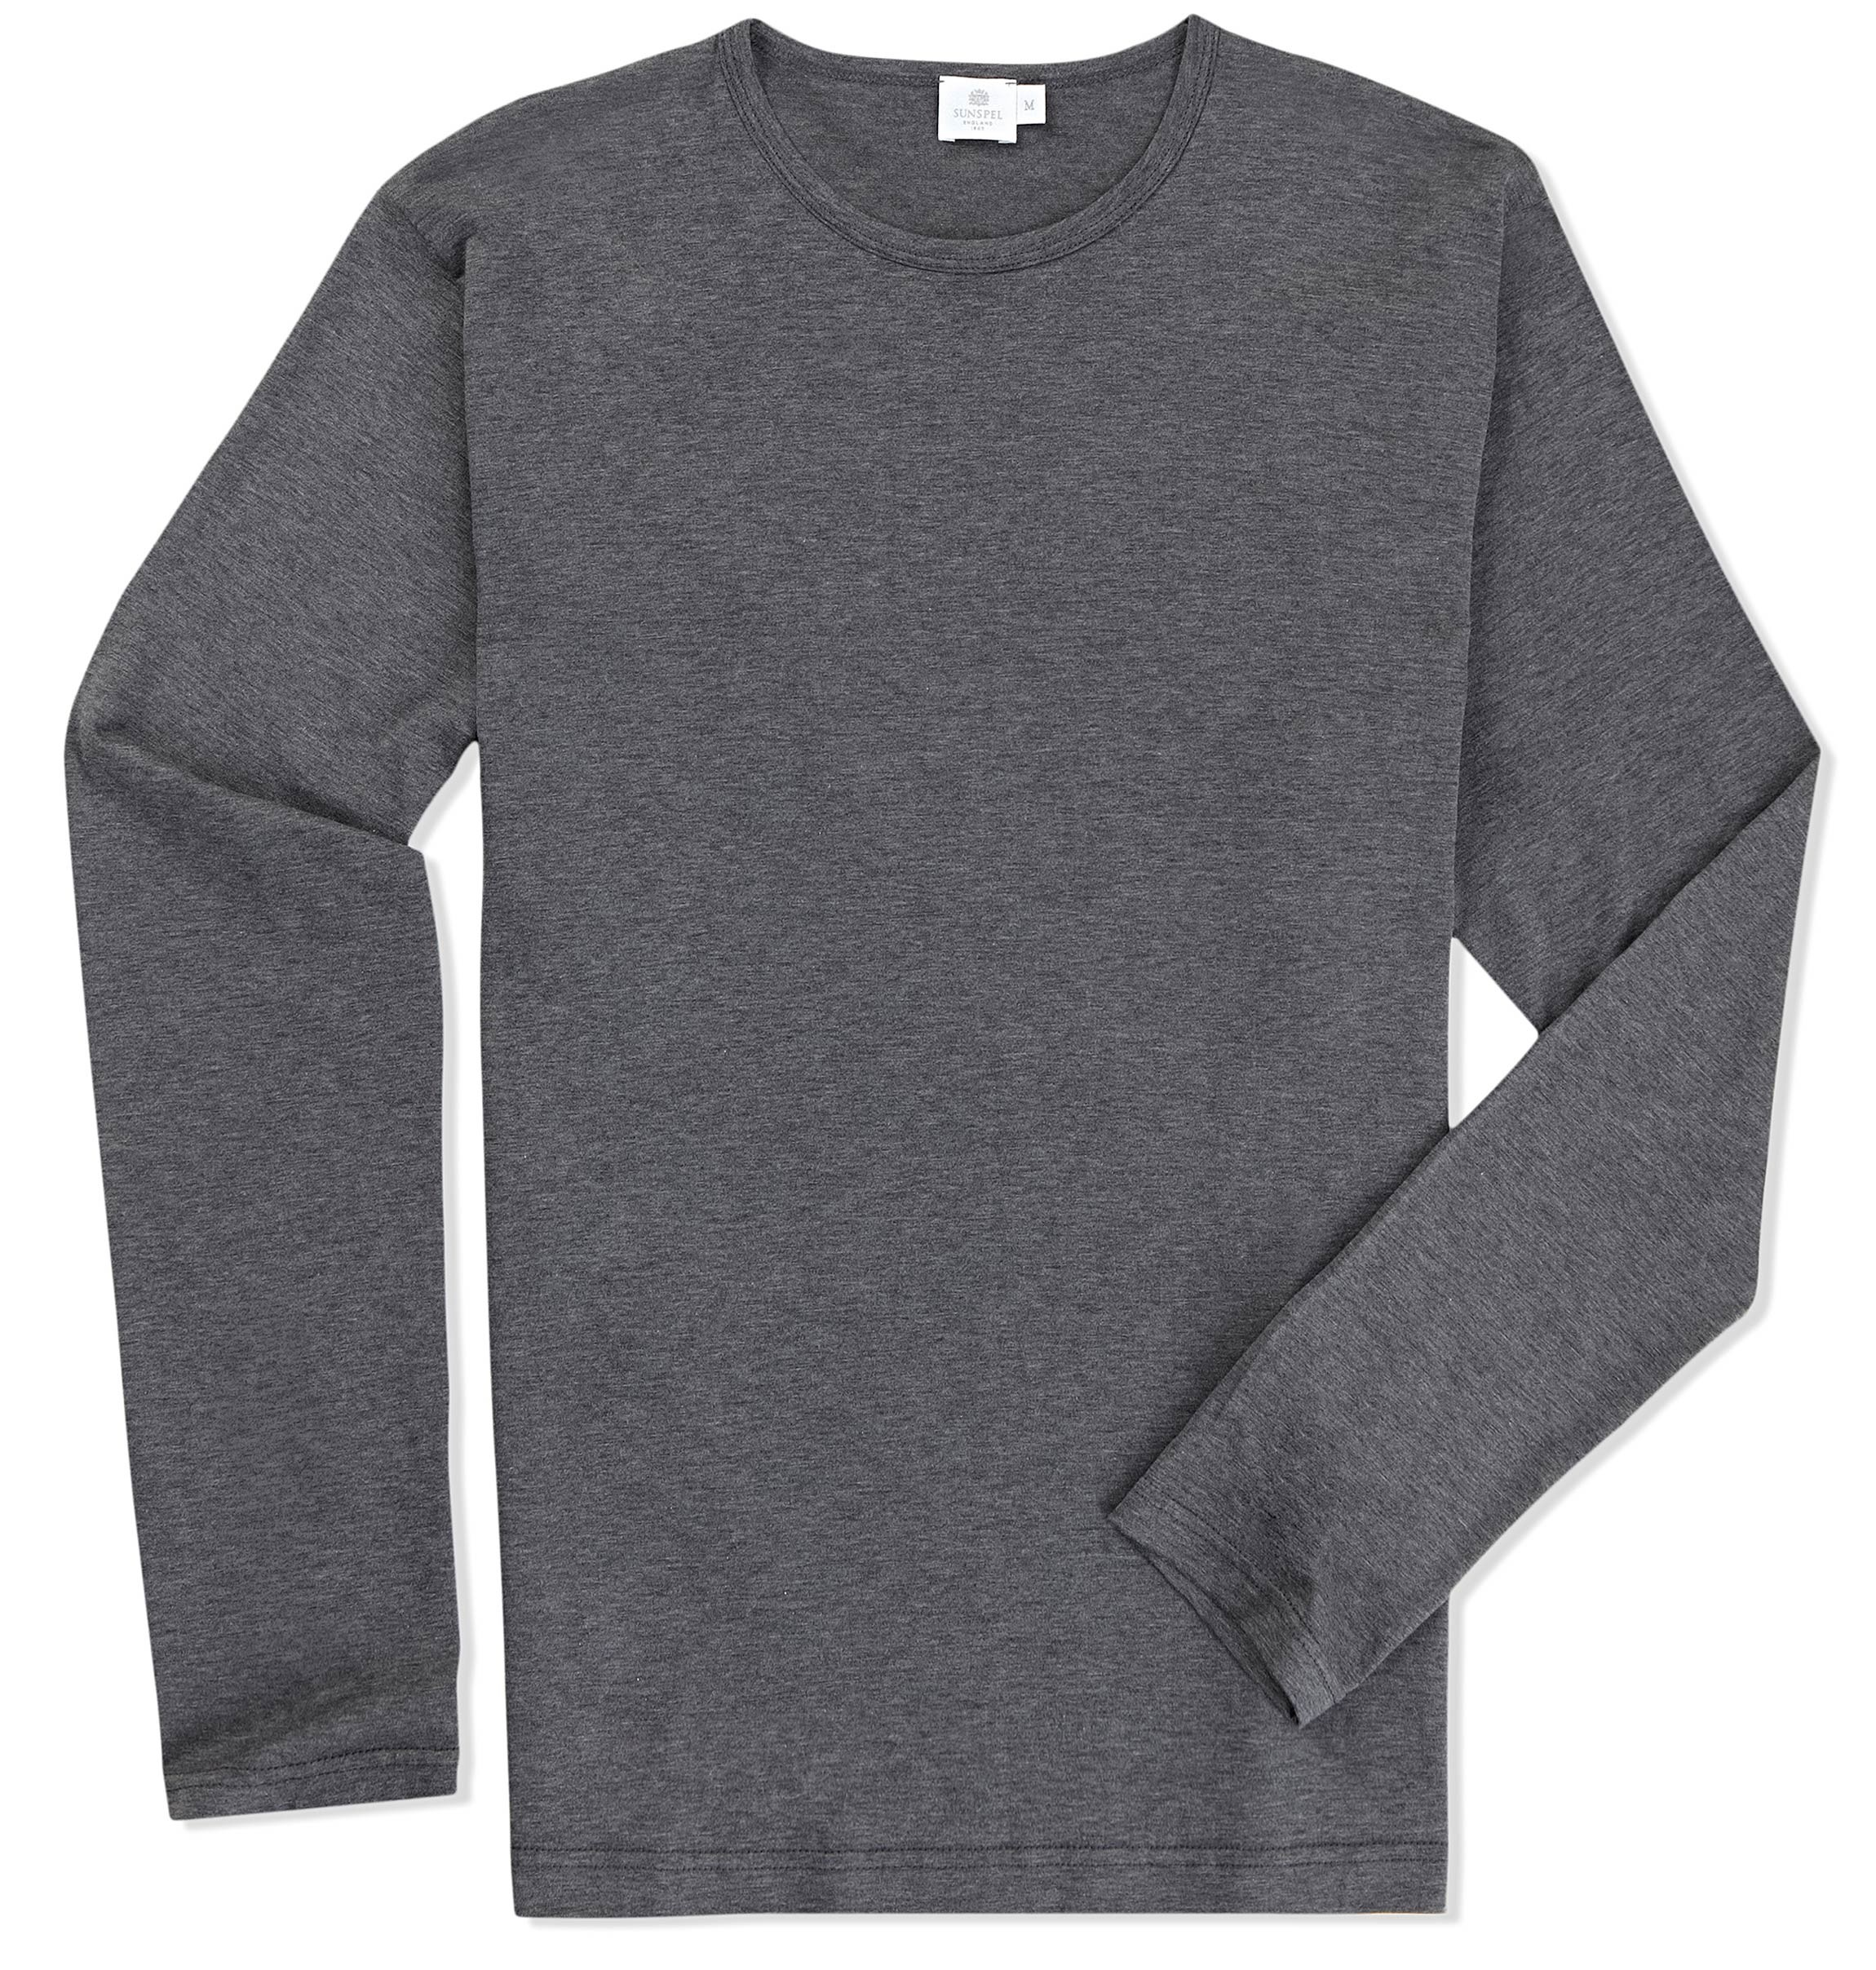 Long Sleeve Gray Shirt | Artee Shirt